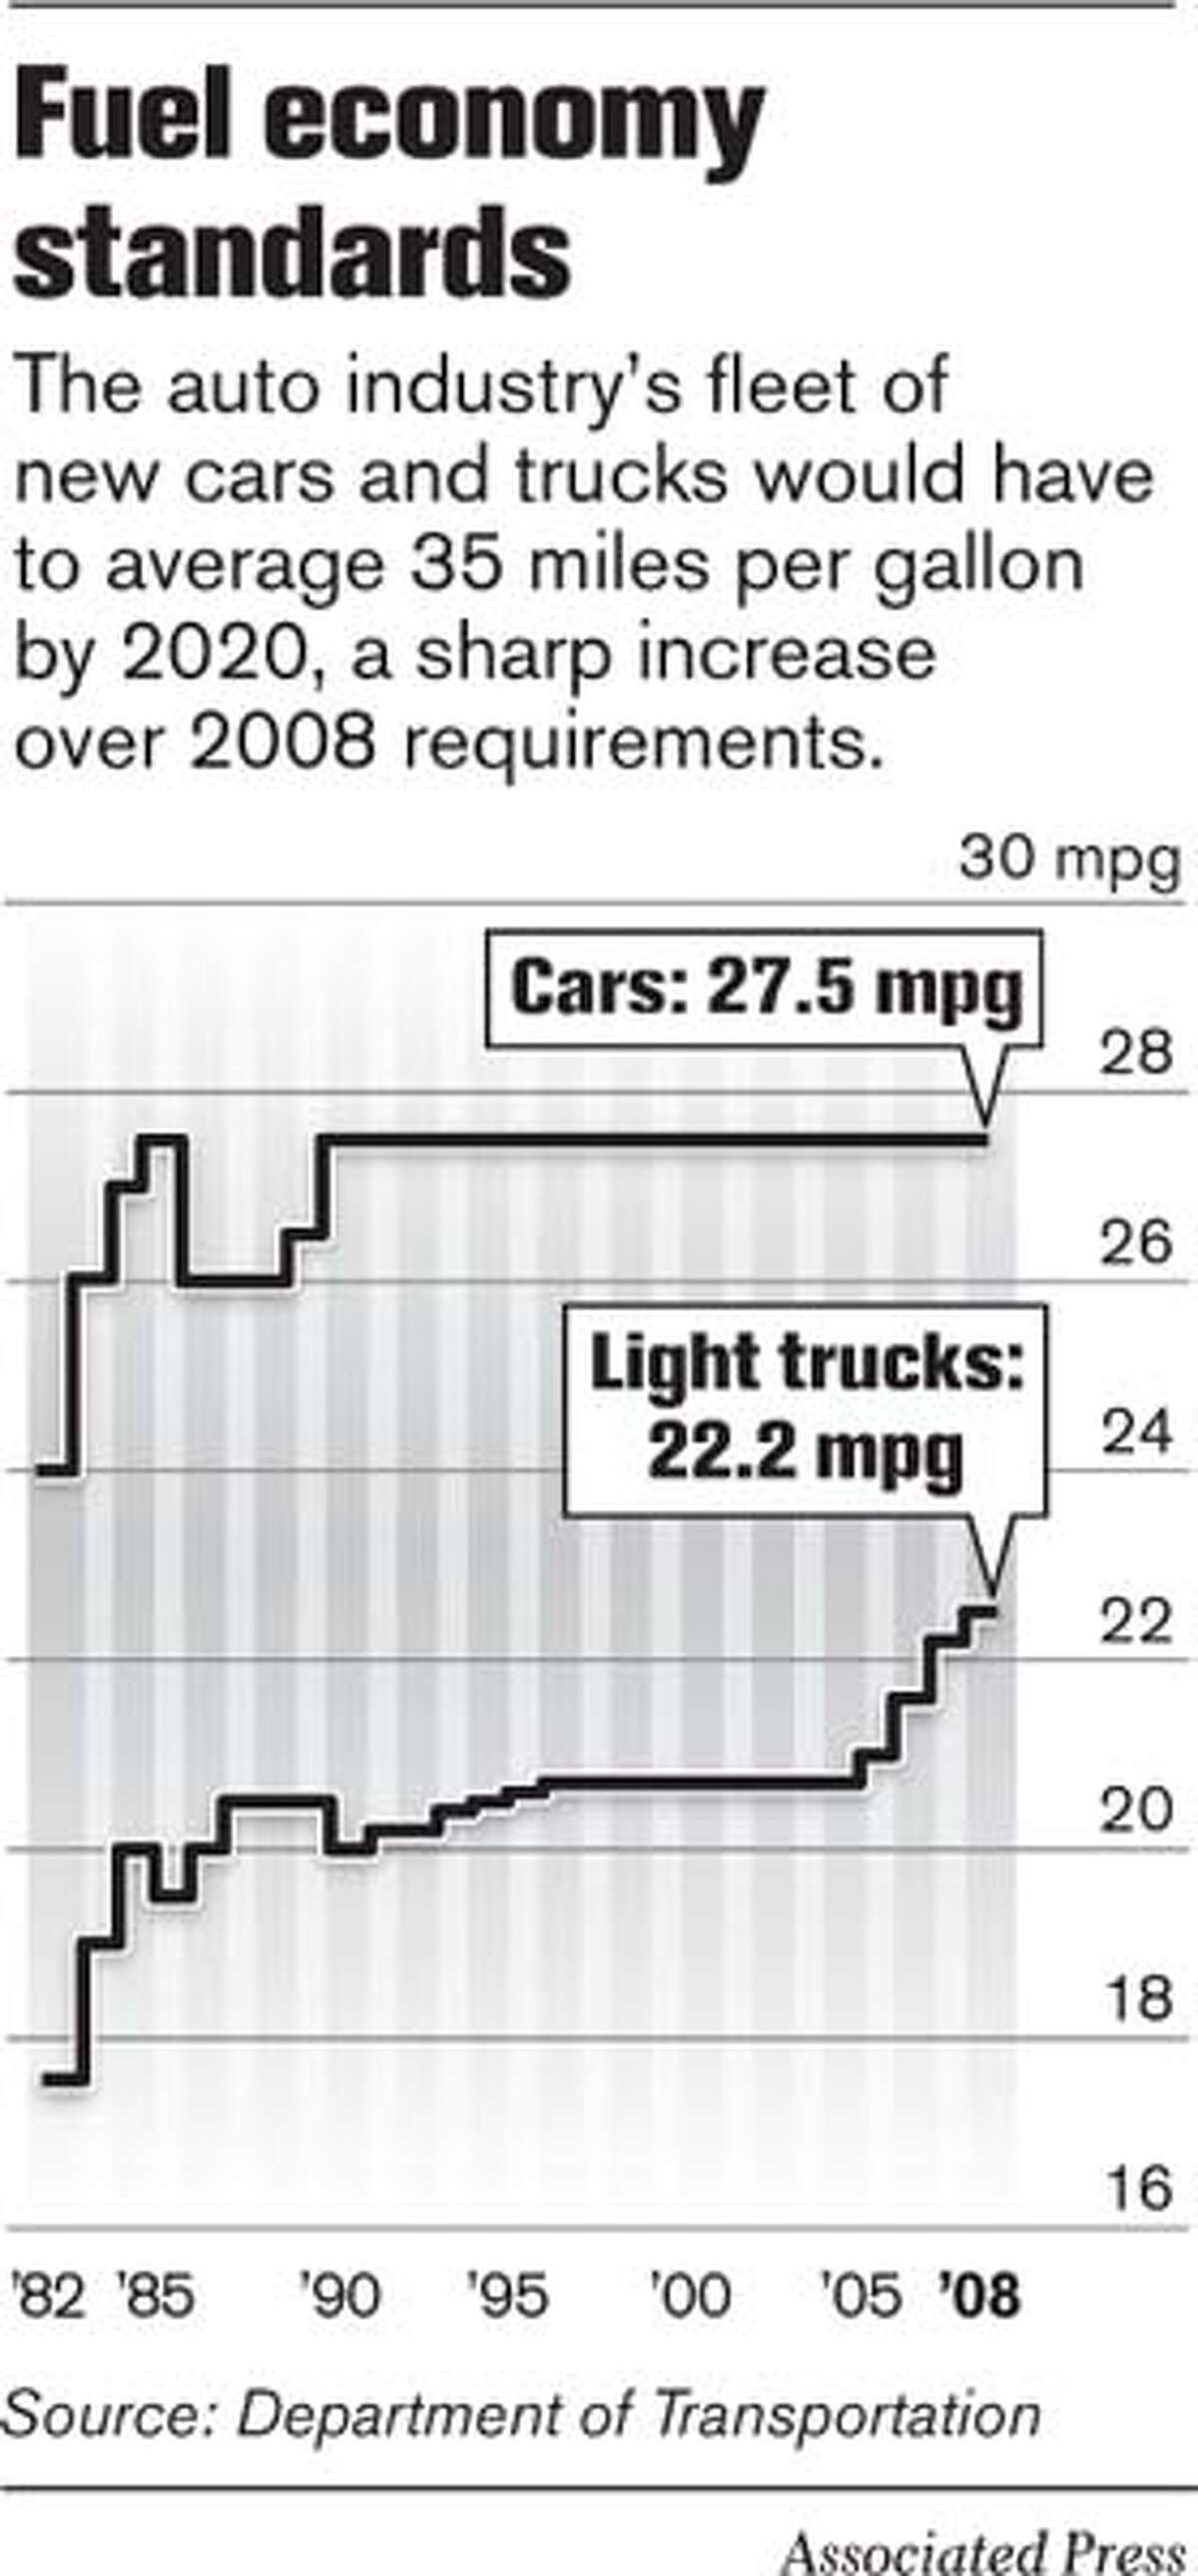 Fuel Economy Standards. Associated Press Graphic